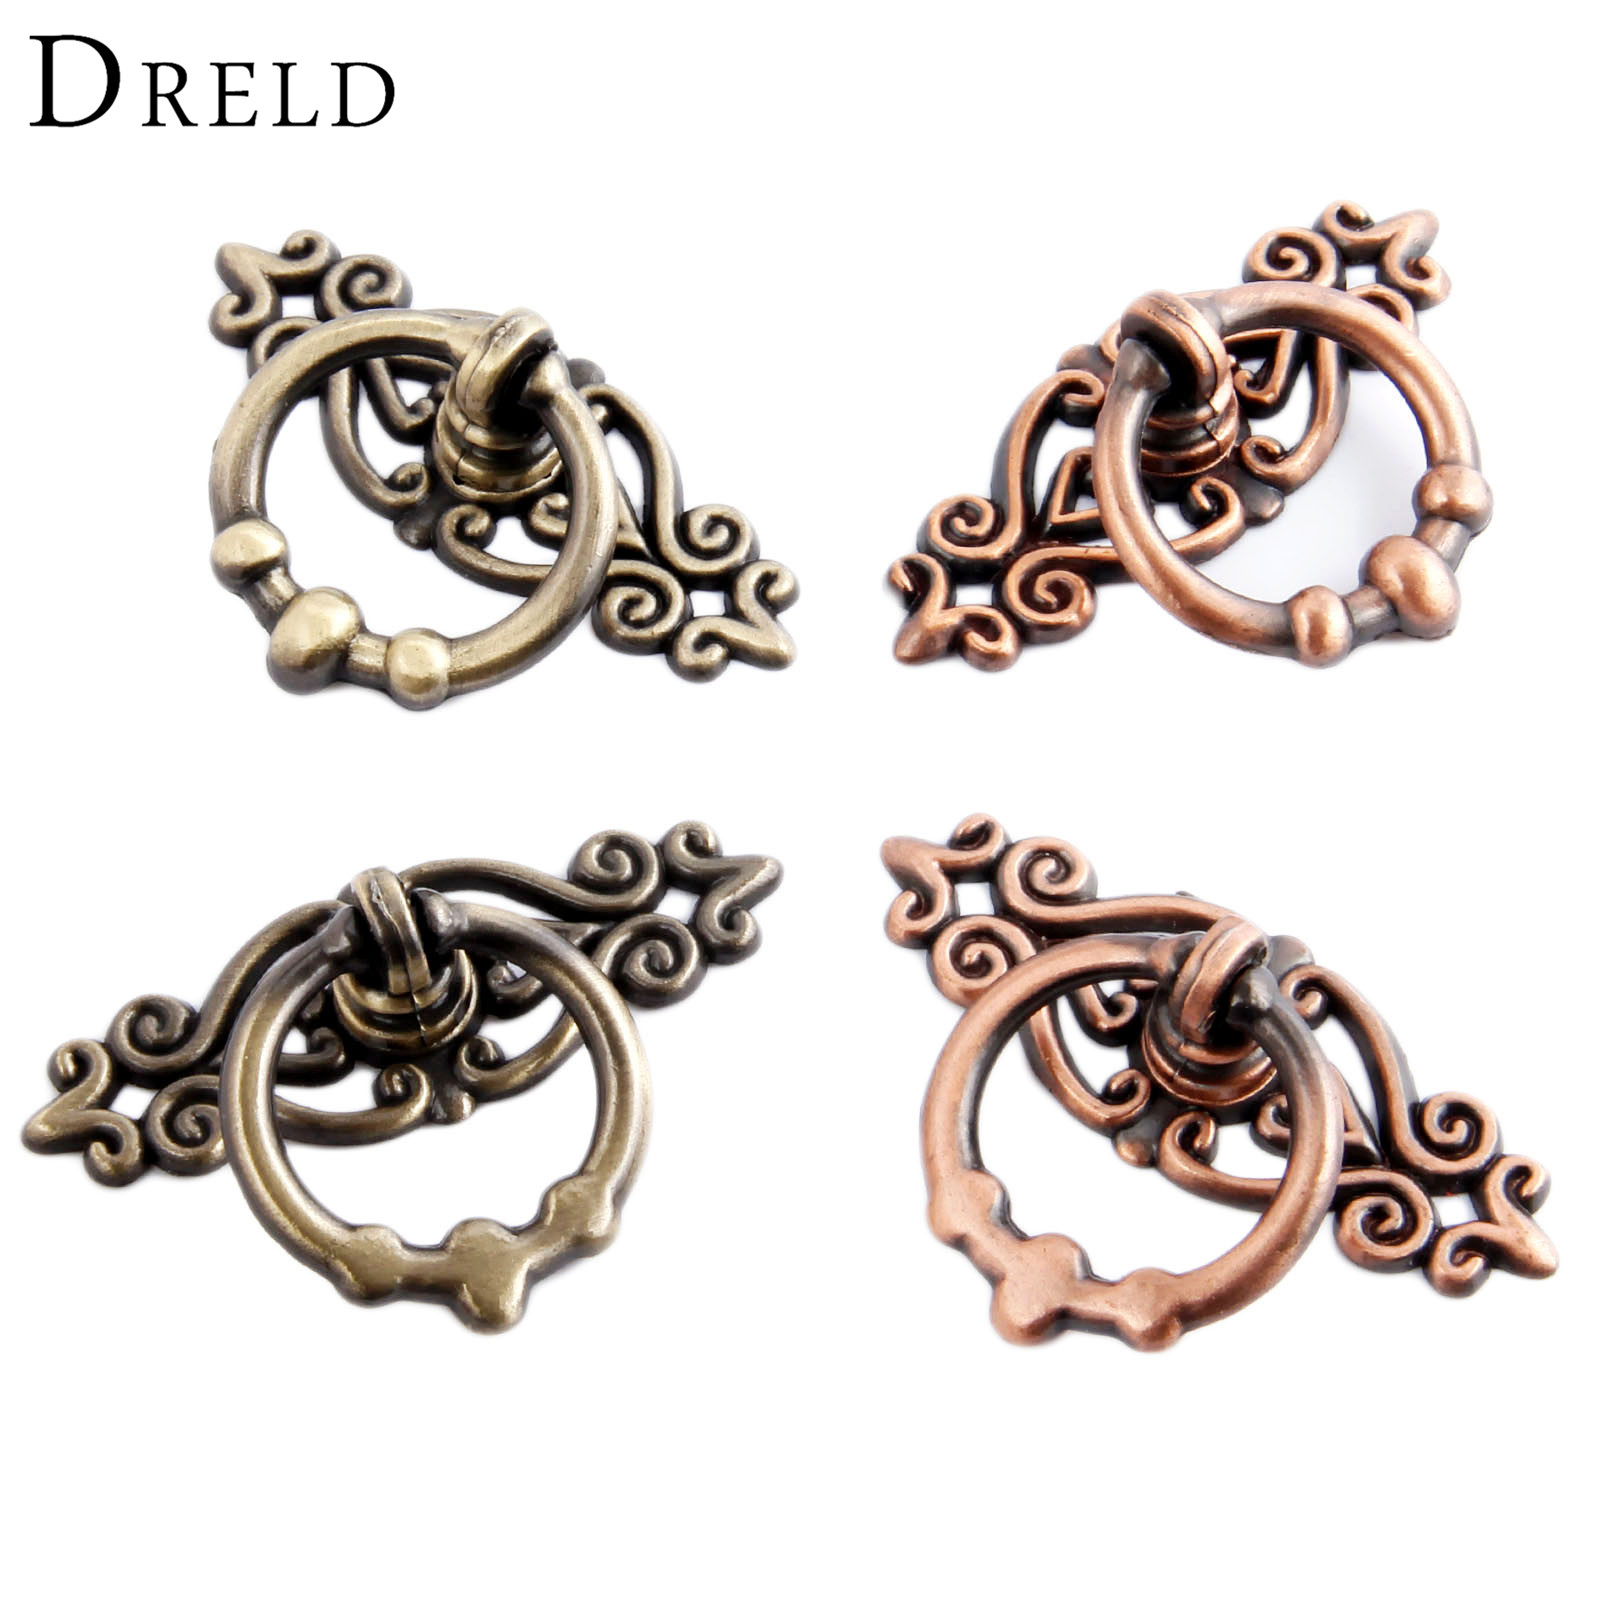 DRELD 2Pcs Antique Furniture Handles Vintage Cabinet Knobs and Handles Kitchen Cupboard Dresser Door Drawer Ring Pull Handles marshall s tendencies – what can economists know